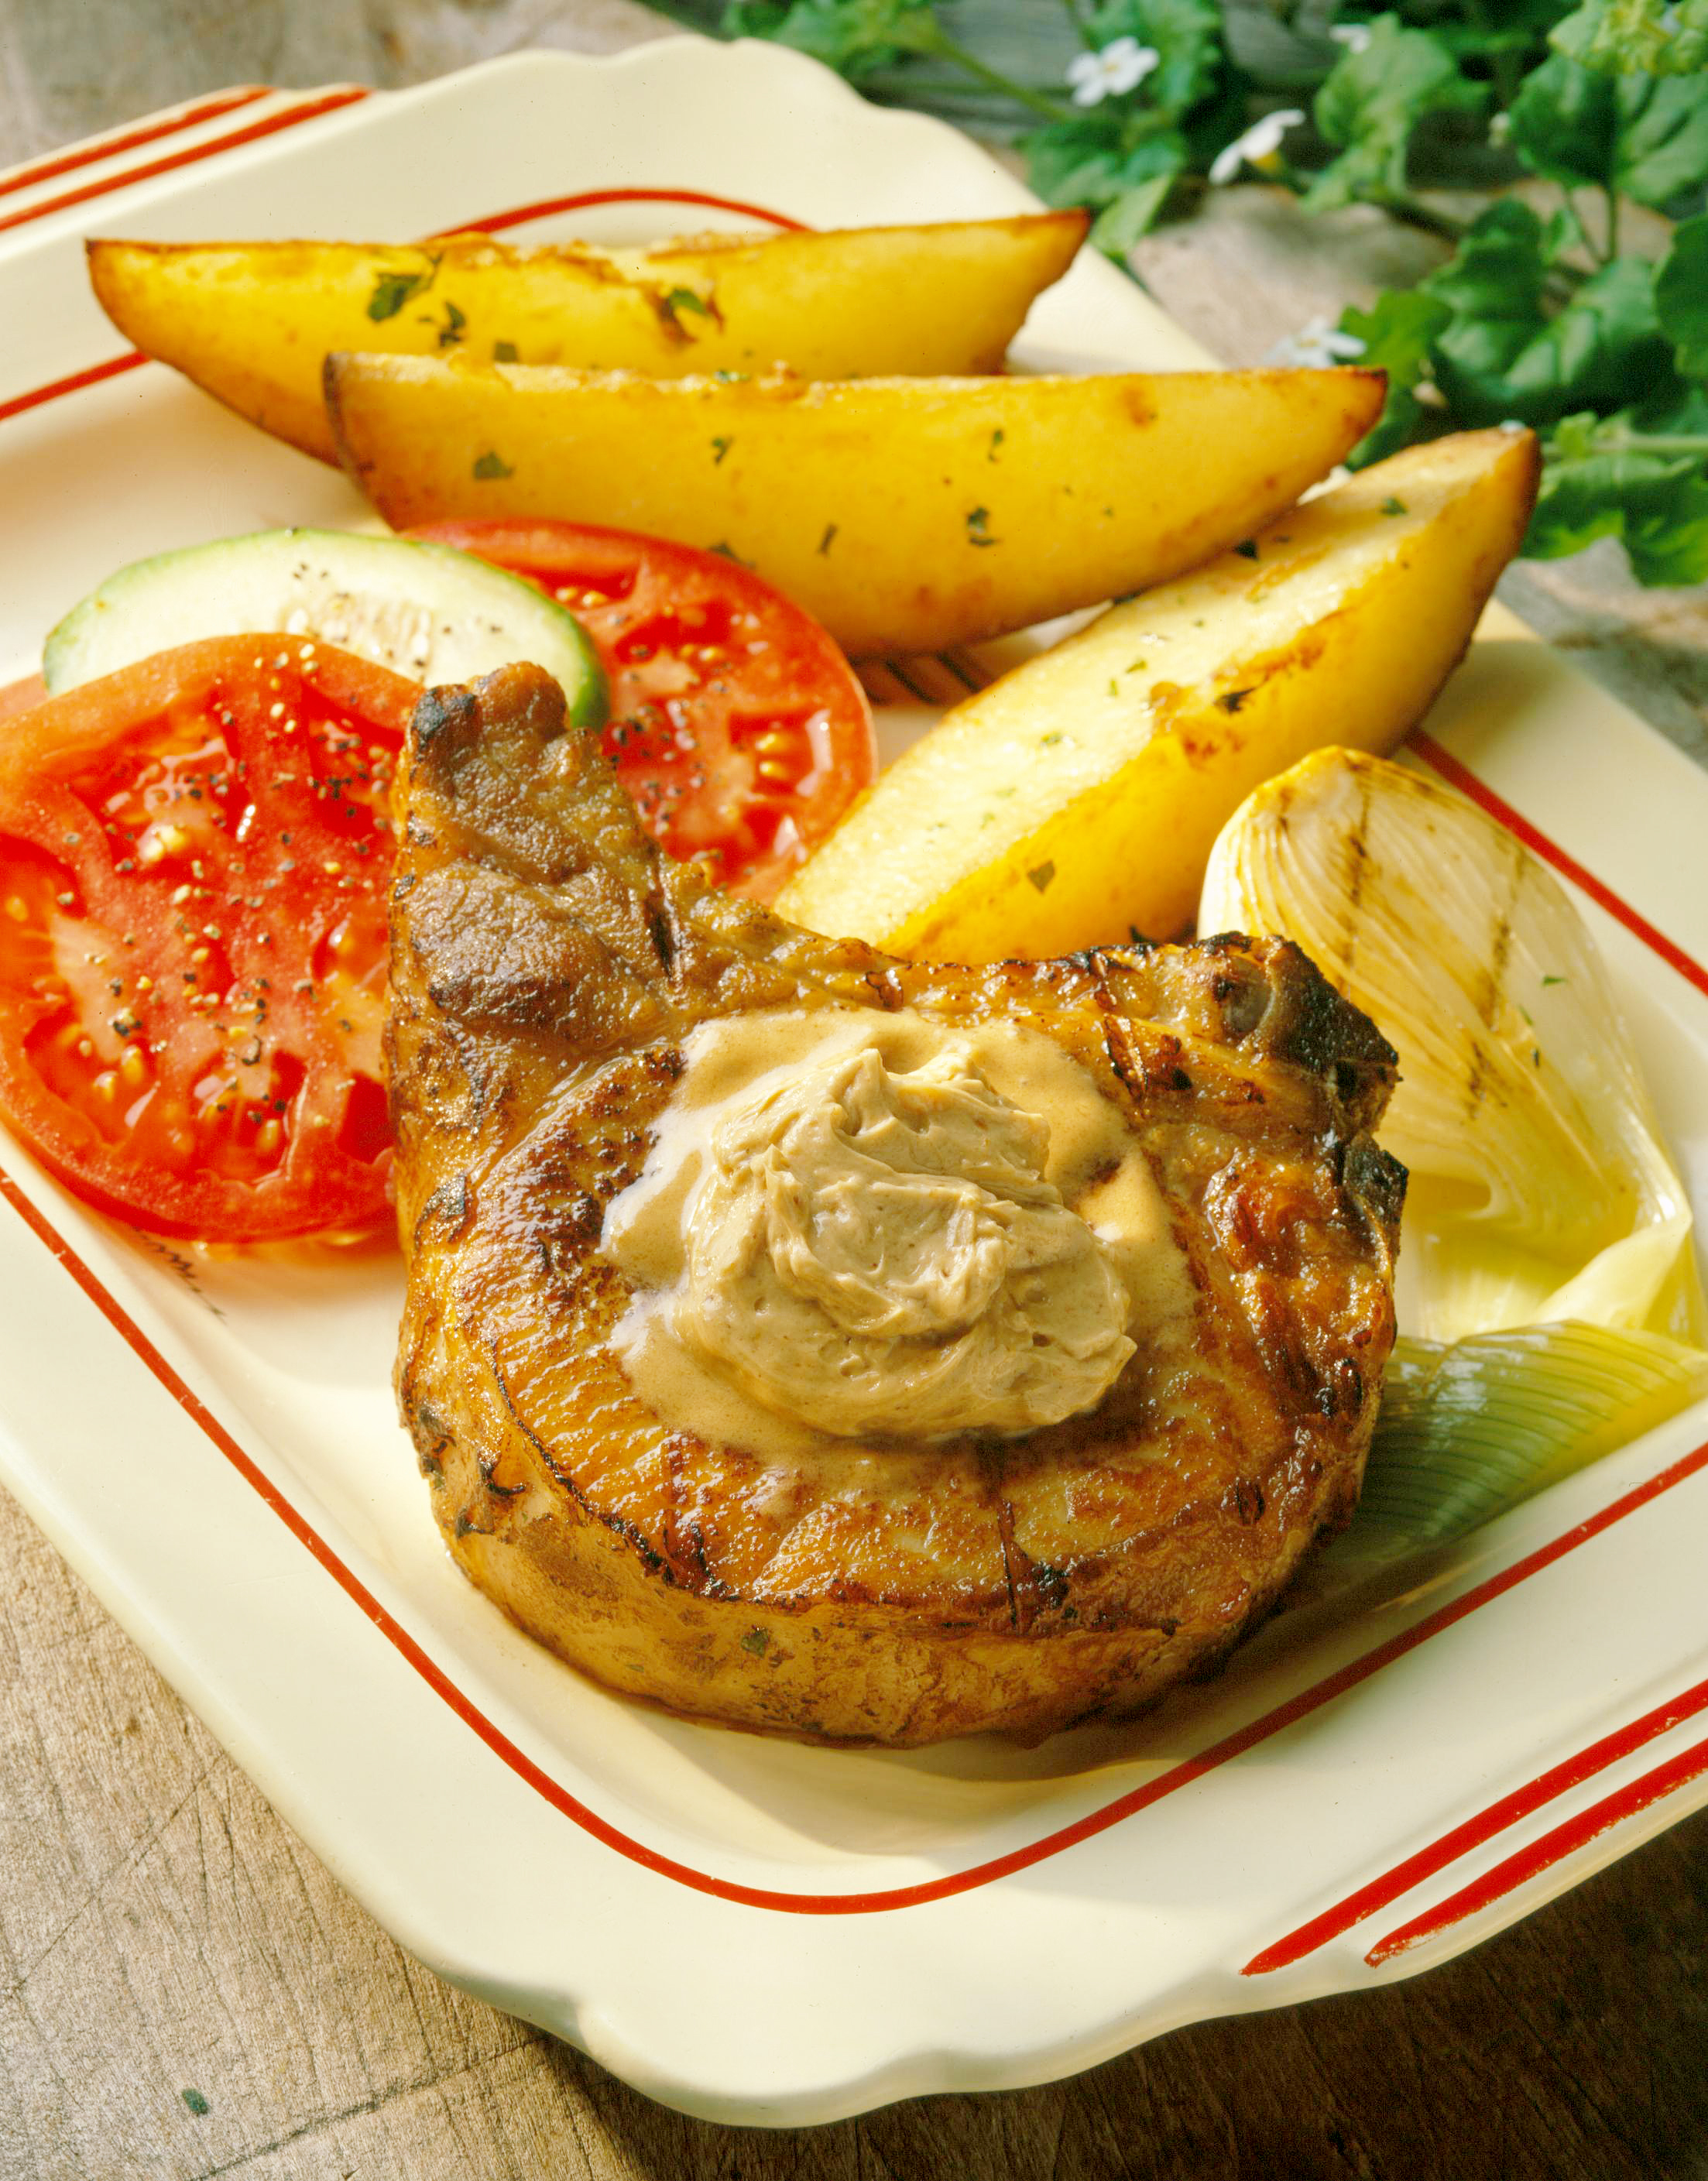 Dad S Grilled Pork Chops With Savory Steak Butter